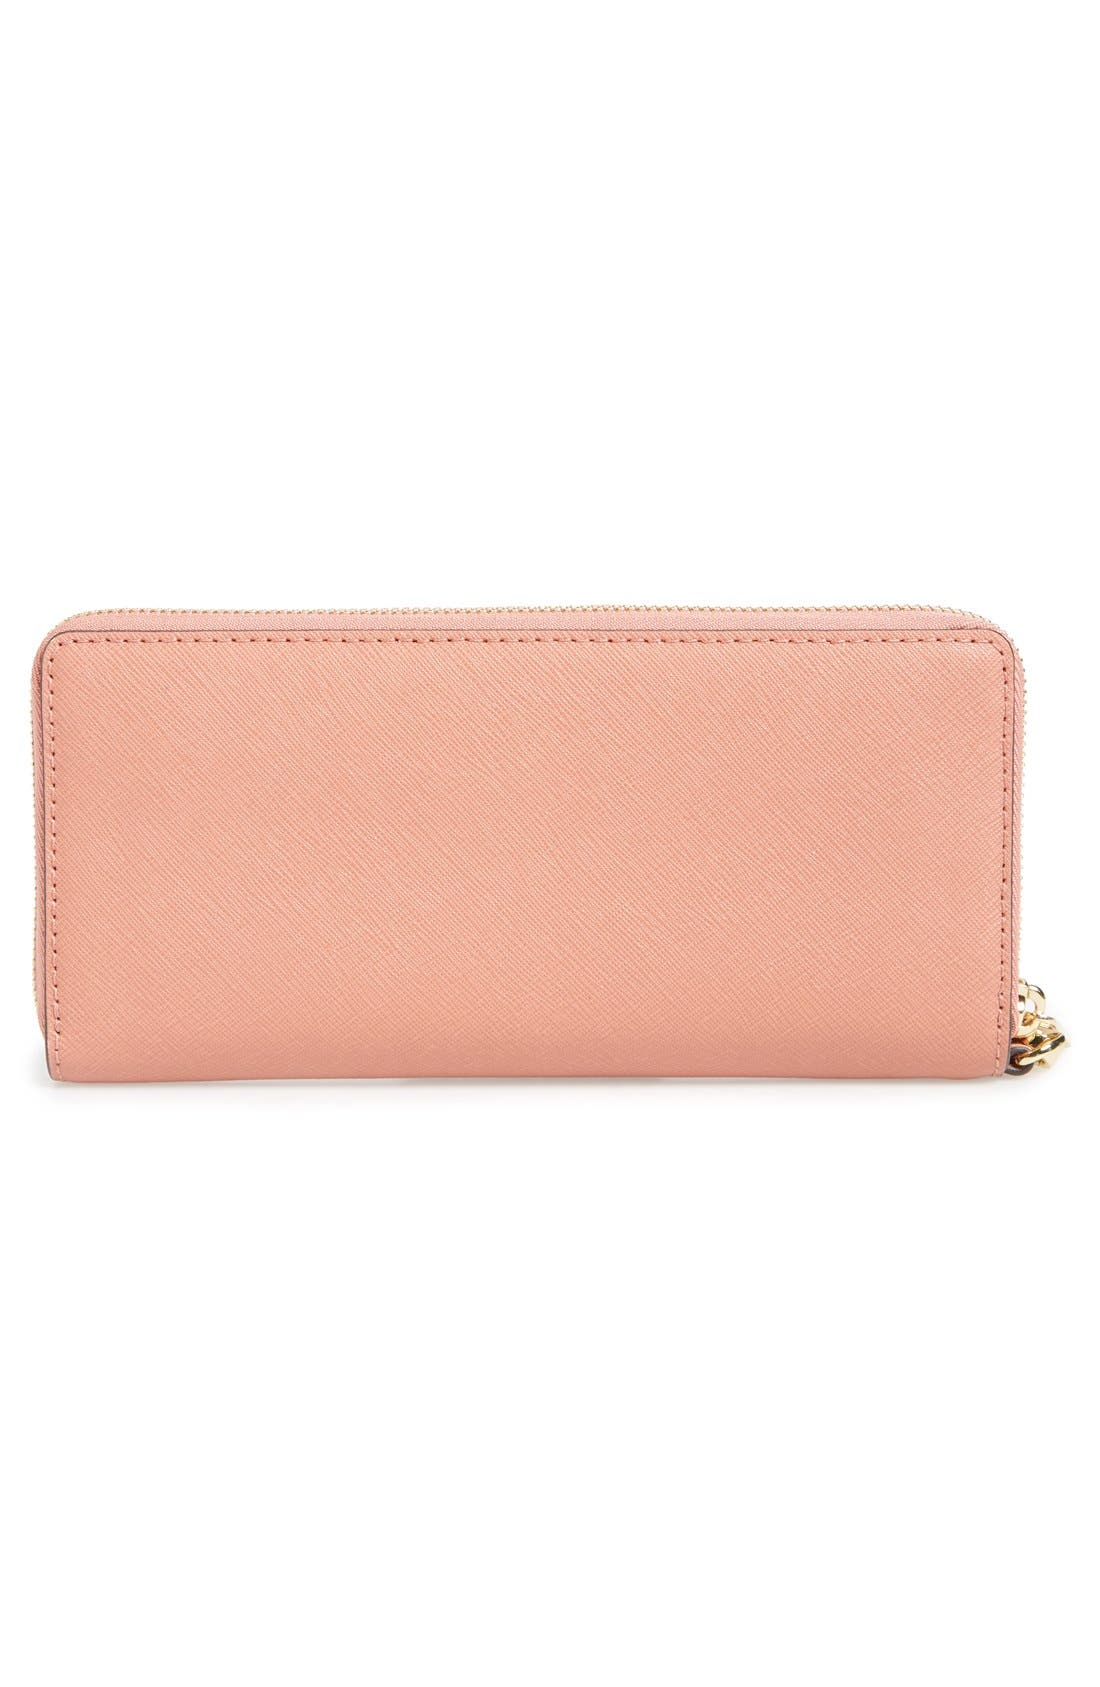 'Jet Set' Leather Travel Wallet,                             Alternate thumbnail 38, color,